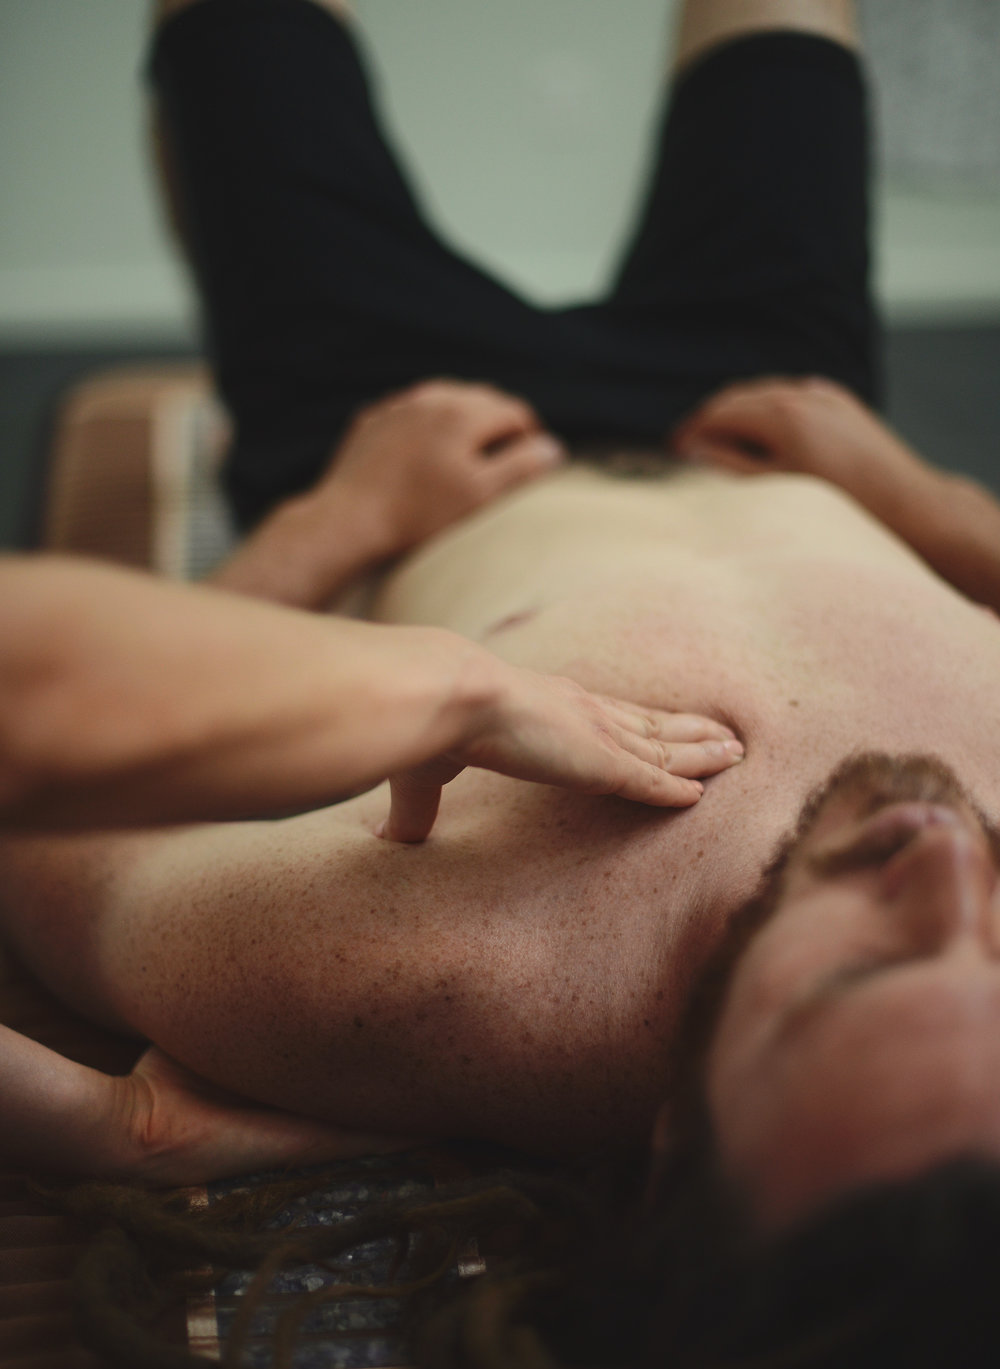 Opt for some relaxing neck and shoulder work too to ease you into a peaceful & present state. -